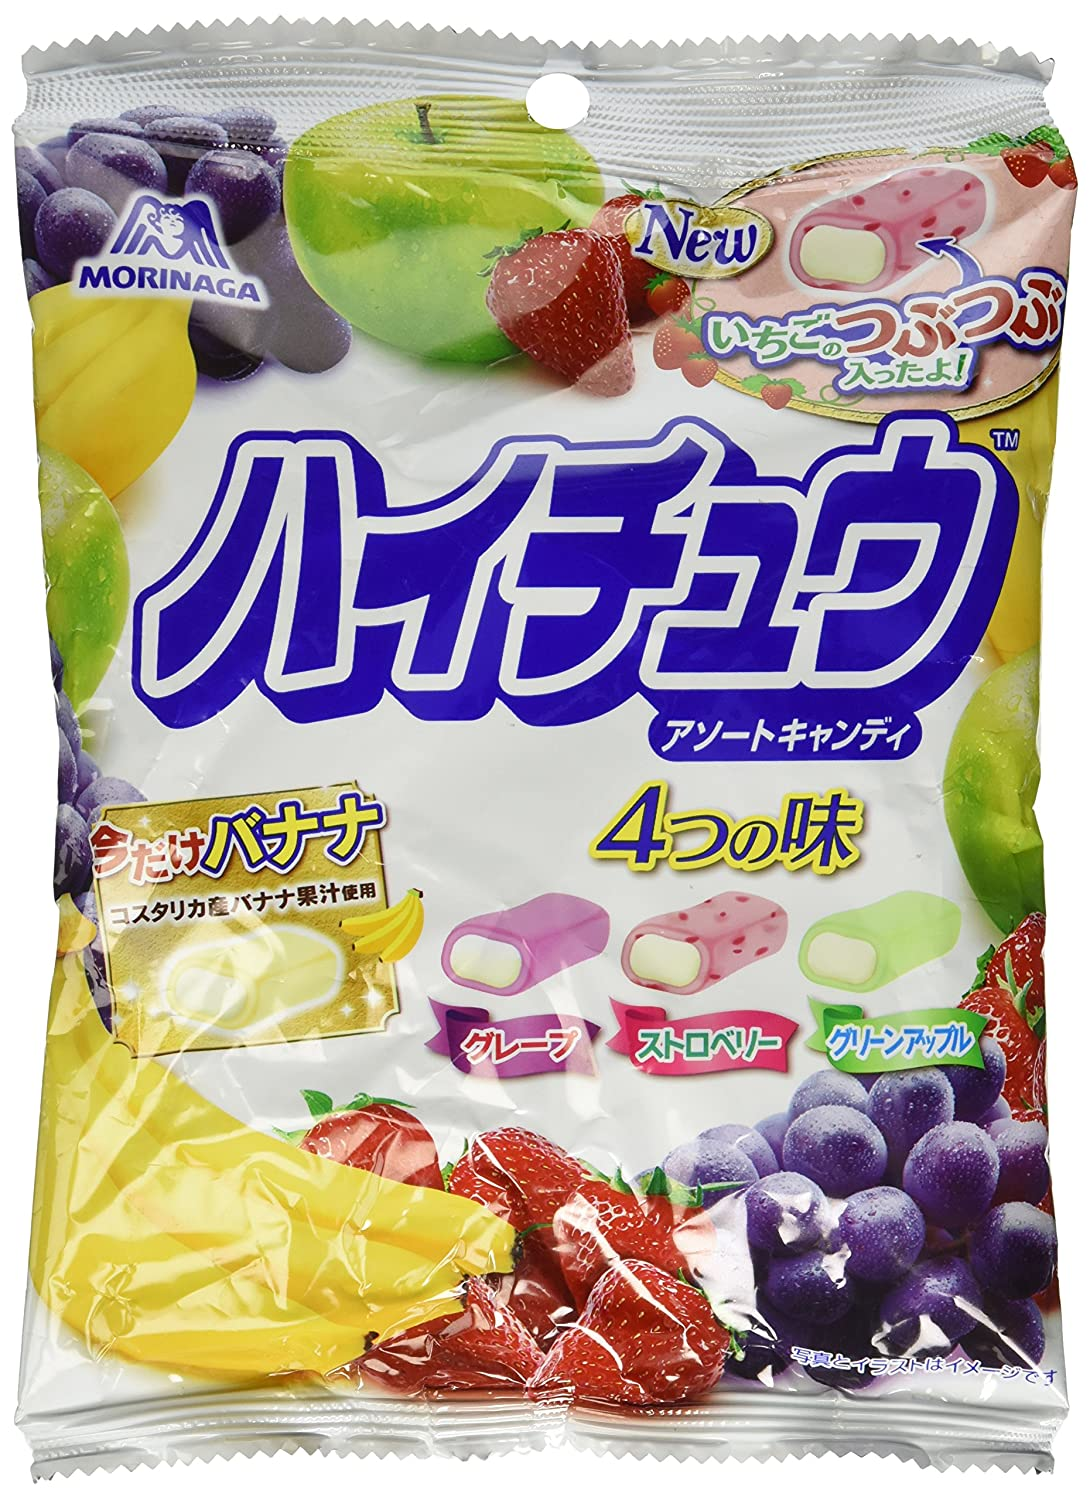 Authentic Japanese Morinaga Hi-Chew Assortment Bag 4 Fruit Flavors Grape Strawberry Green Apple Melon Made in Japan